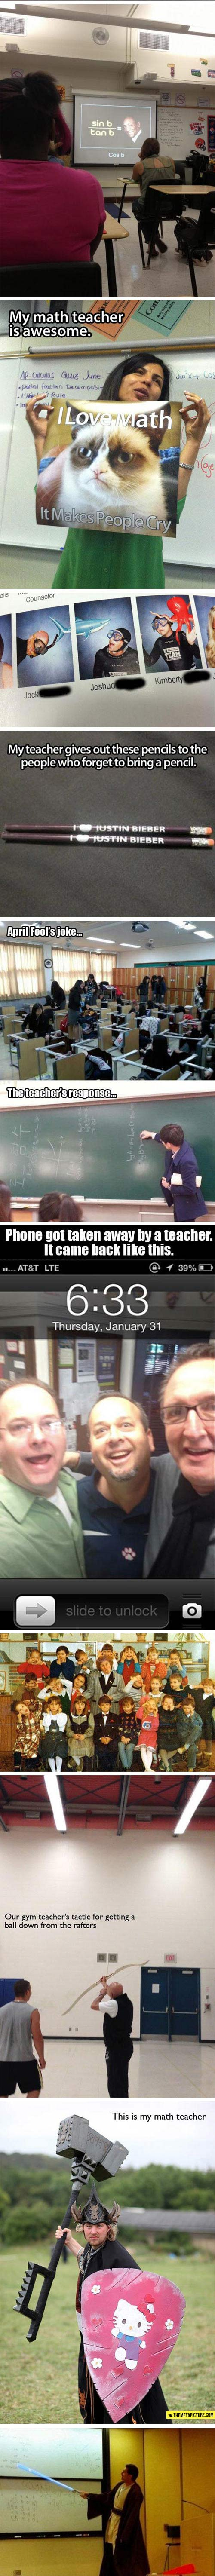 funny-awesome-teachers-nerd